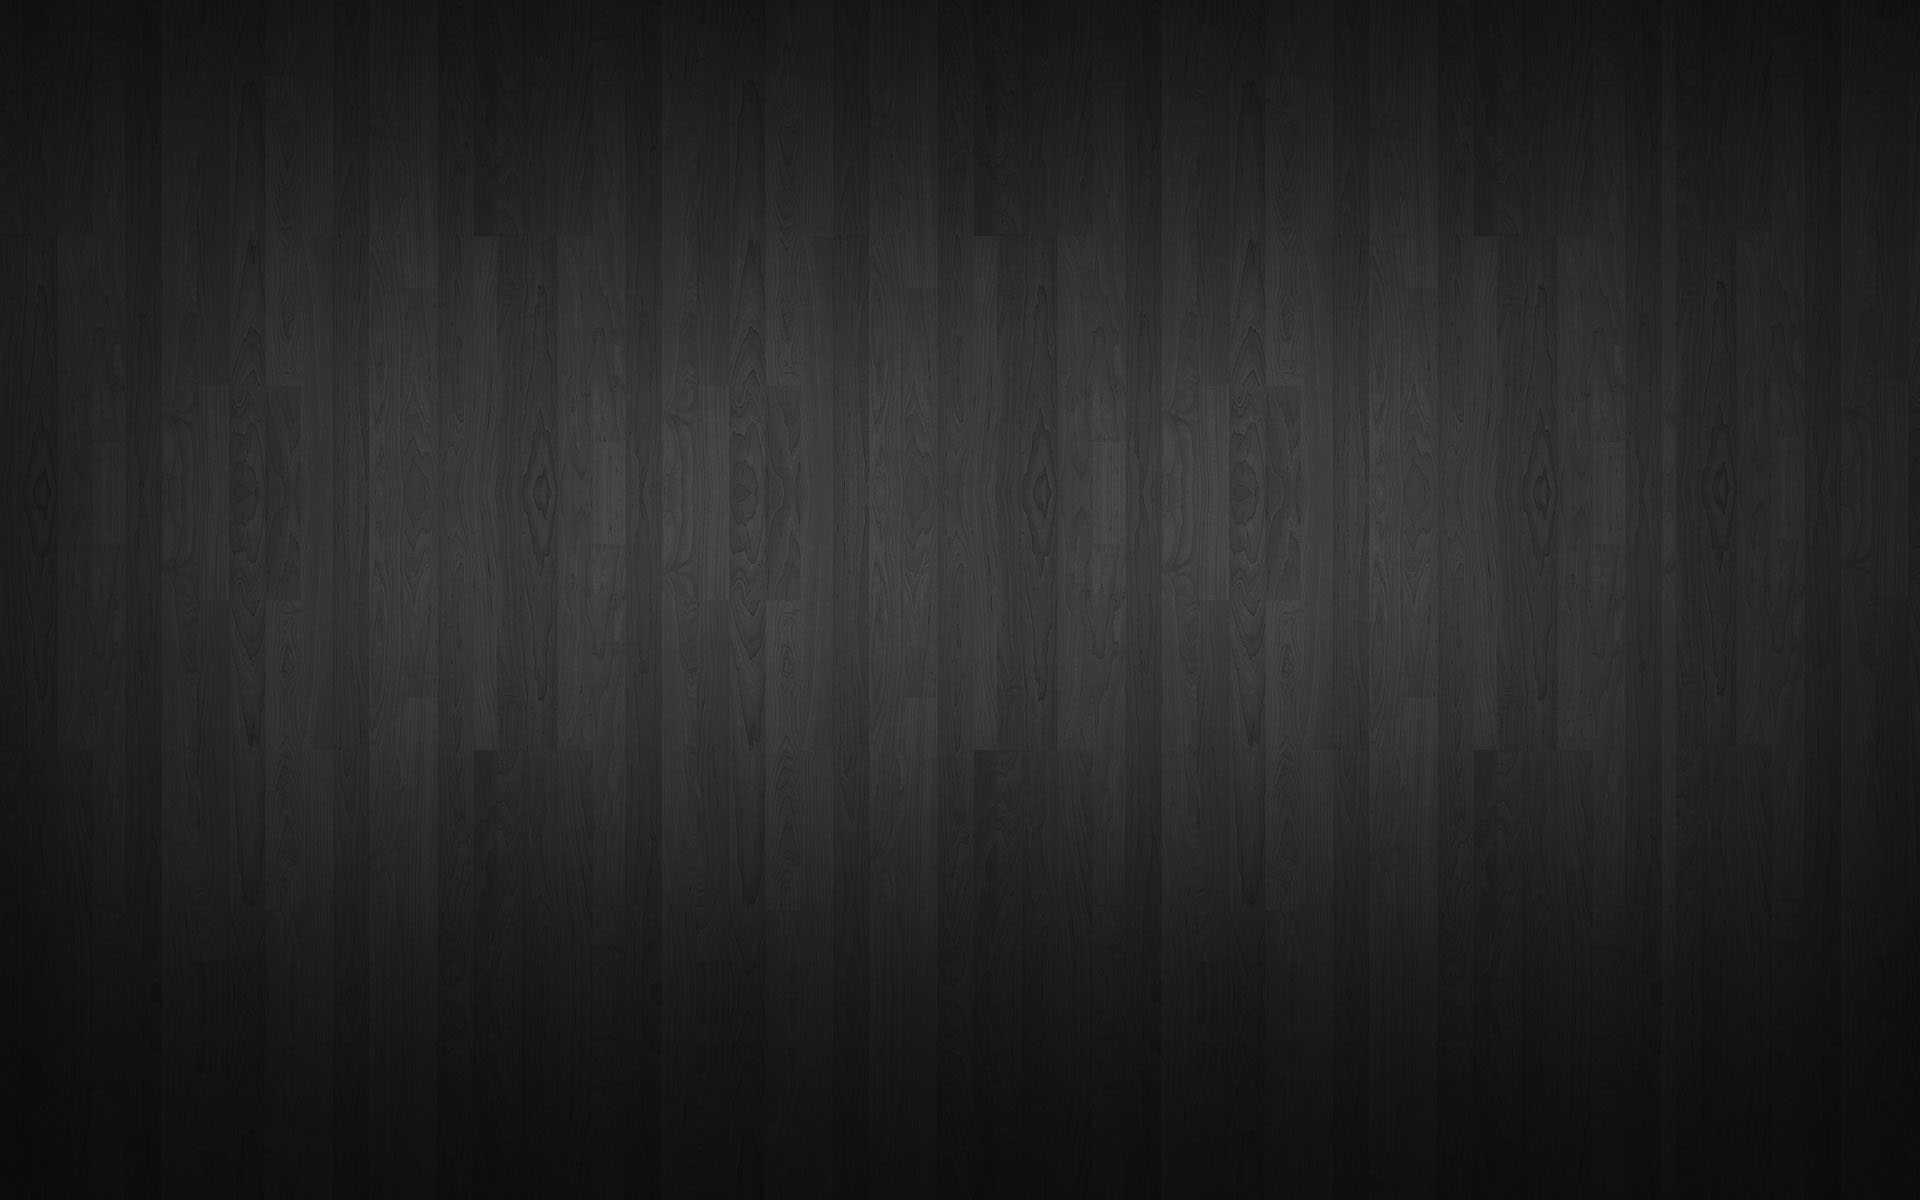 Html background image with abstract pattern in black and grey gradient shade